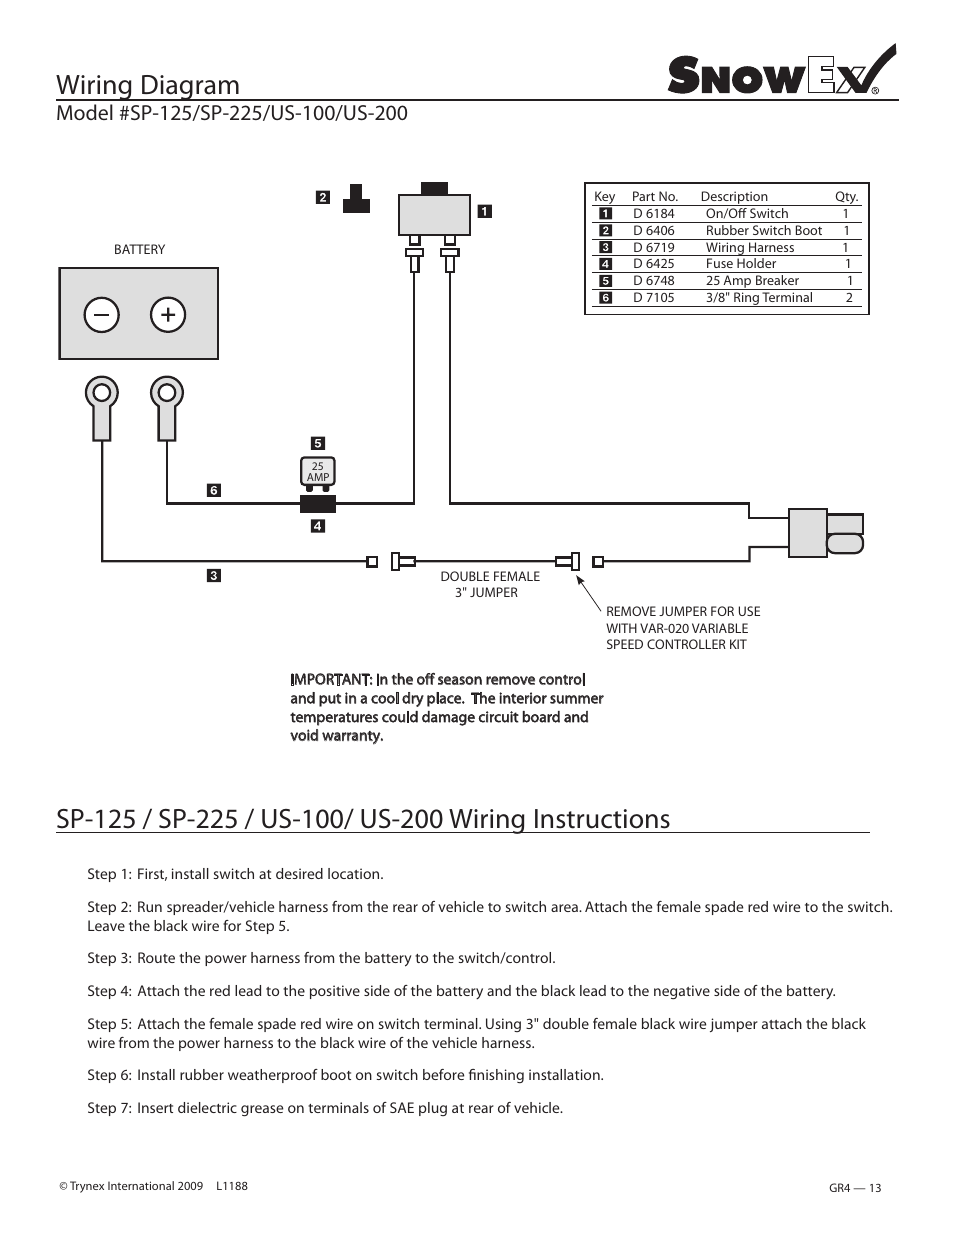 hight resolution of wiring diagram snowex sp 225 us 200 user manual page 13 27